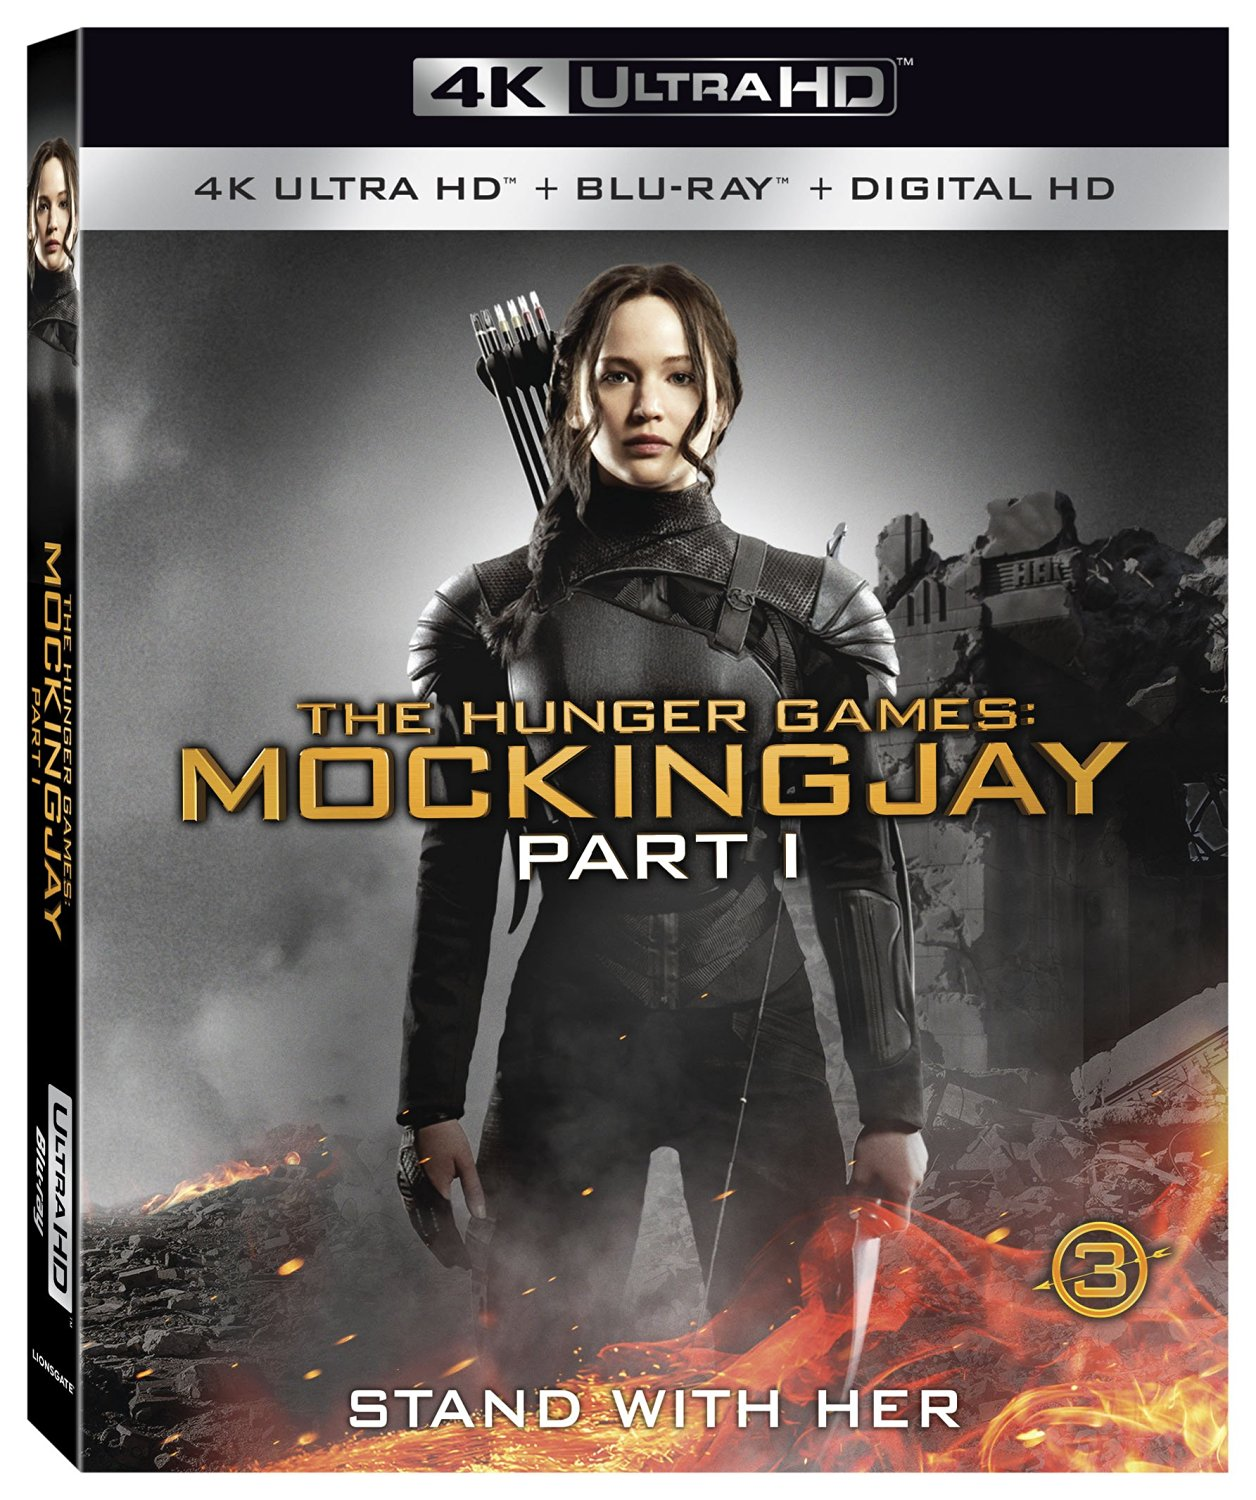 Mockingjay1-4k-UltraHD